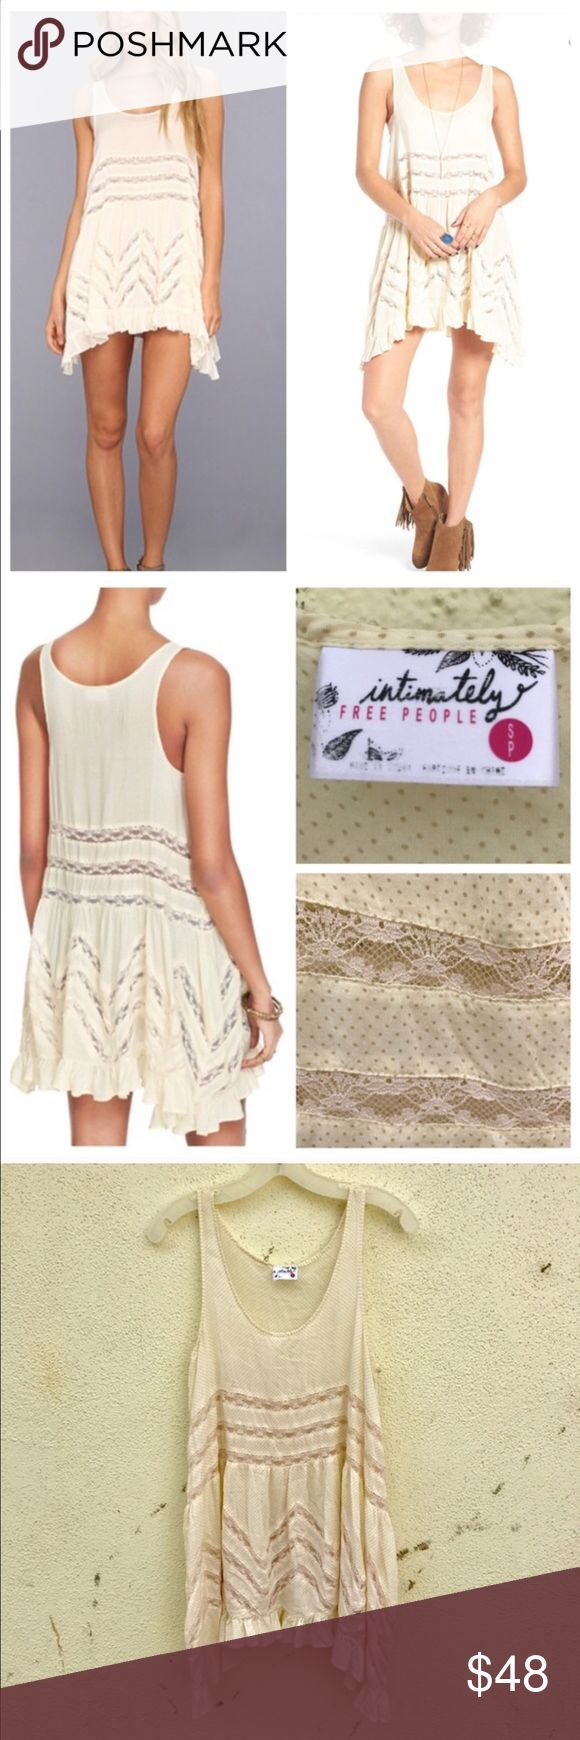 FREE PEOPLE TRAPEZE SLIP DRESS Voile cream LACE s A flowing design with a feminine silhouette, the voile and LACE slip top/dress from FREE PEOPLE is perfect whether worn alone or with you favorite cardi or boho jacket. Pair up with a bralette/bandeau, tank or even layer with thermal.  With jeans, shorts, leggings or just boots, this piece is versatile season to season. Polka dot print pattern. Cream color with LACE inserts. Scoop NECK, sleeveless. Asymmetrical hemline. SZ SMALL (n10) Free…